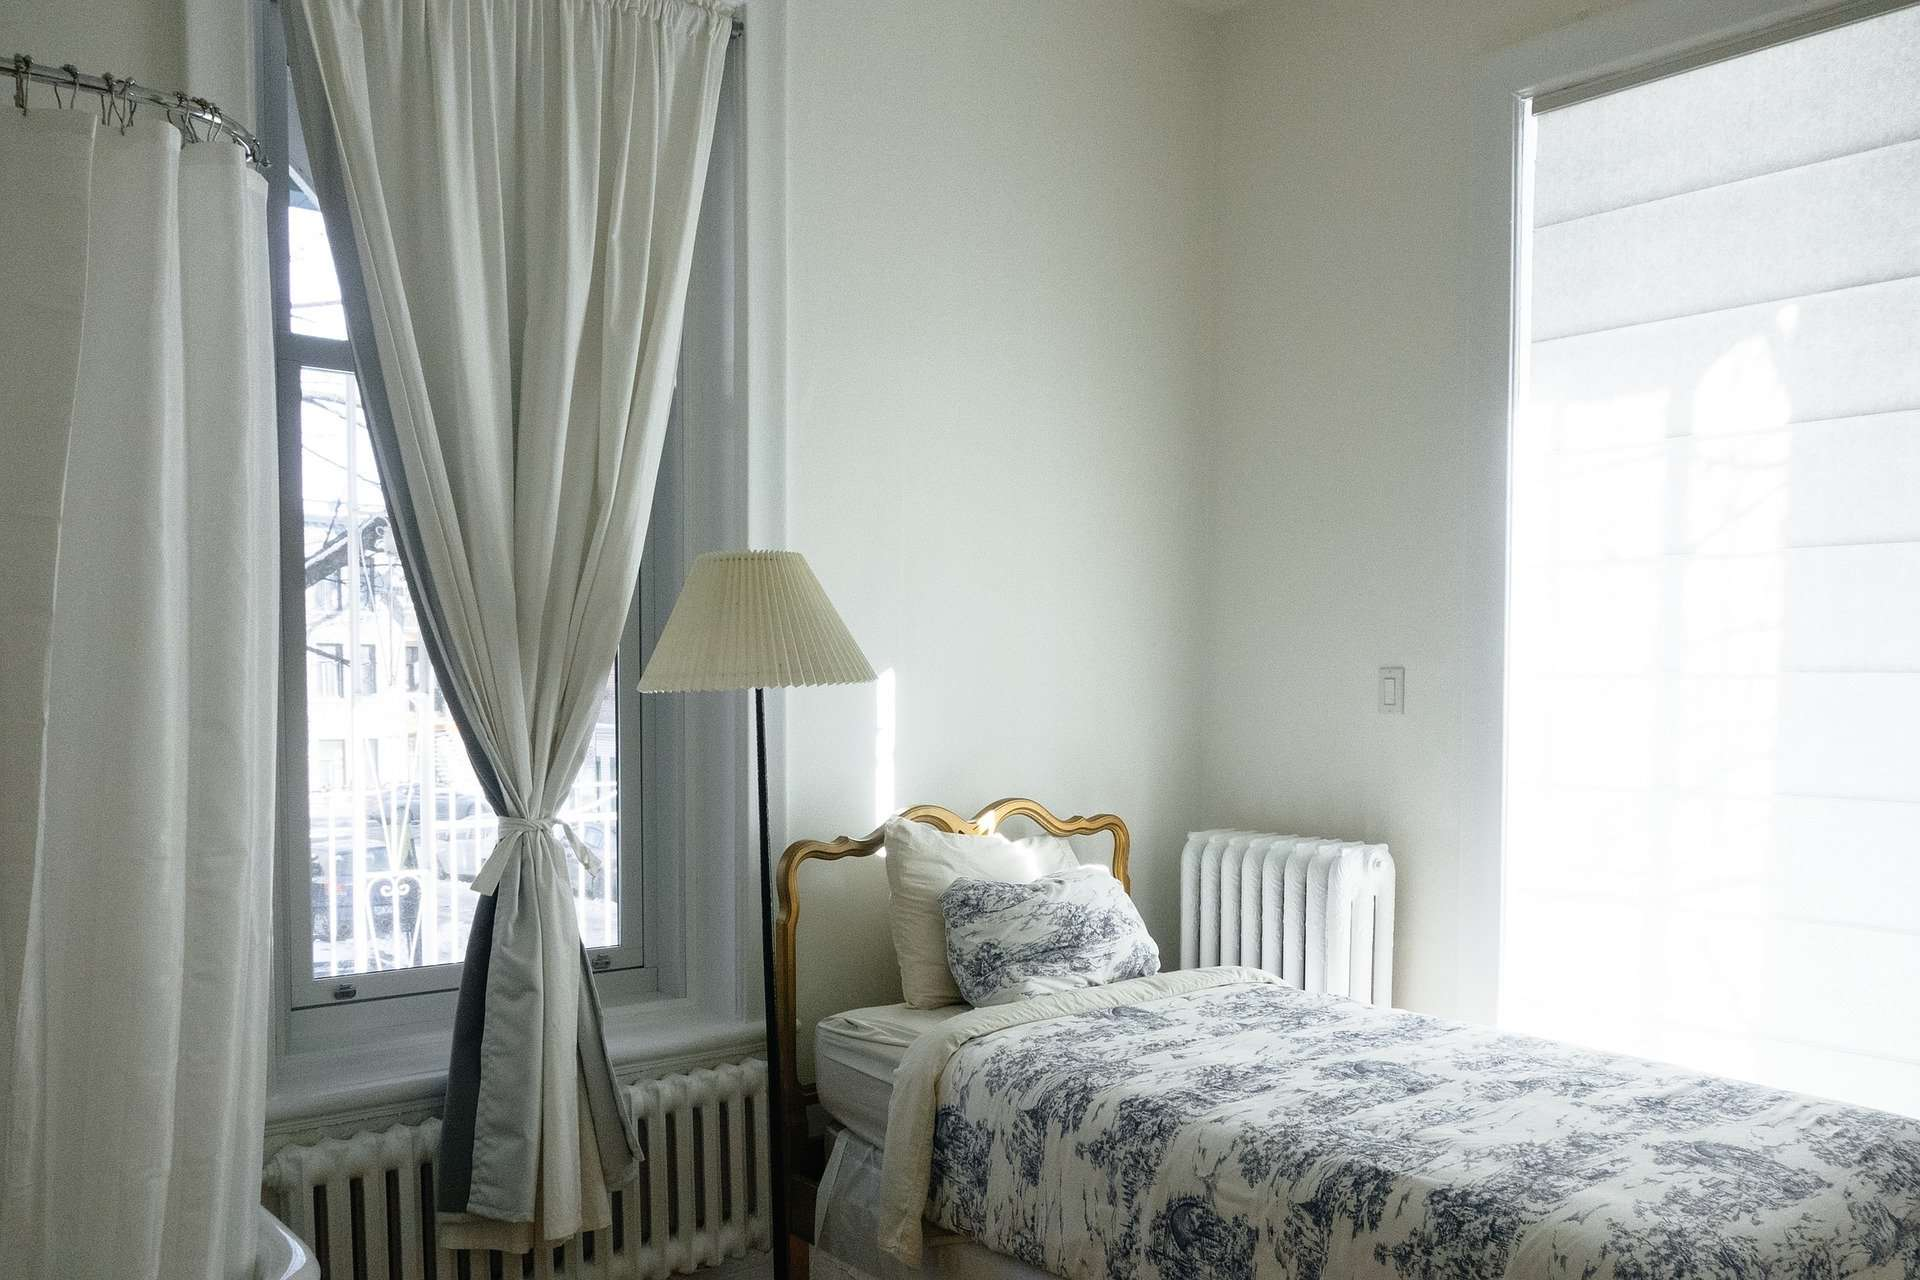 Spritz Your Curtains with a Little Water